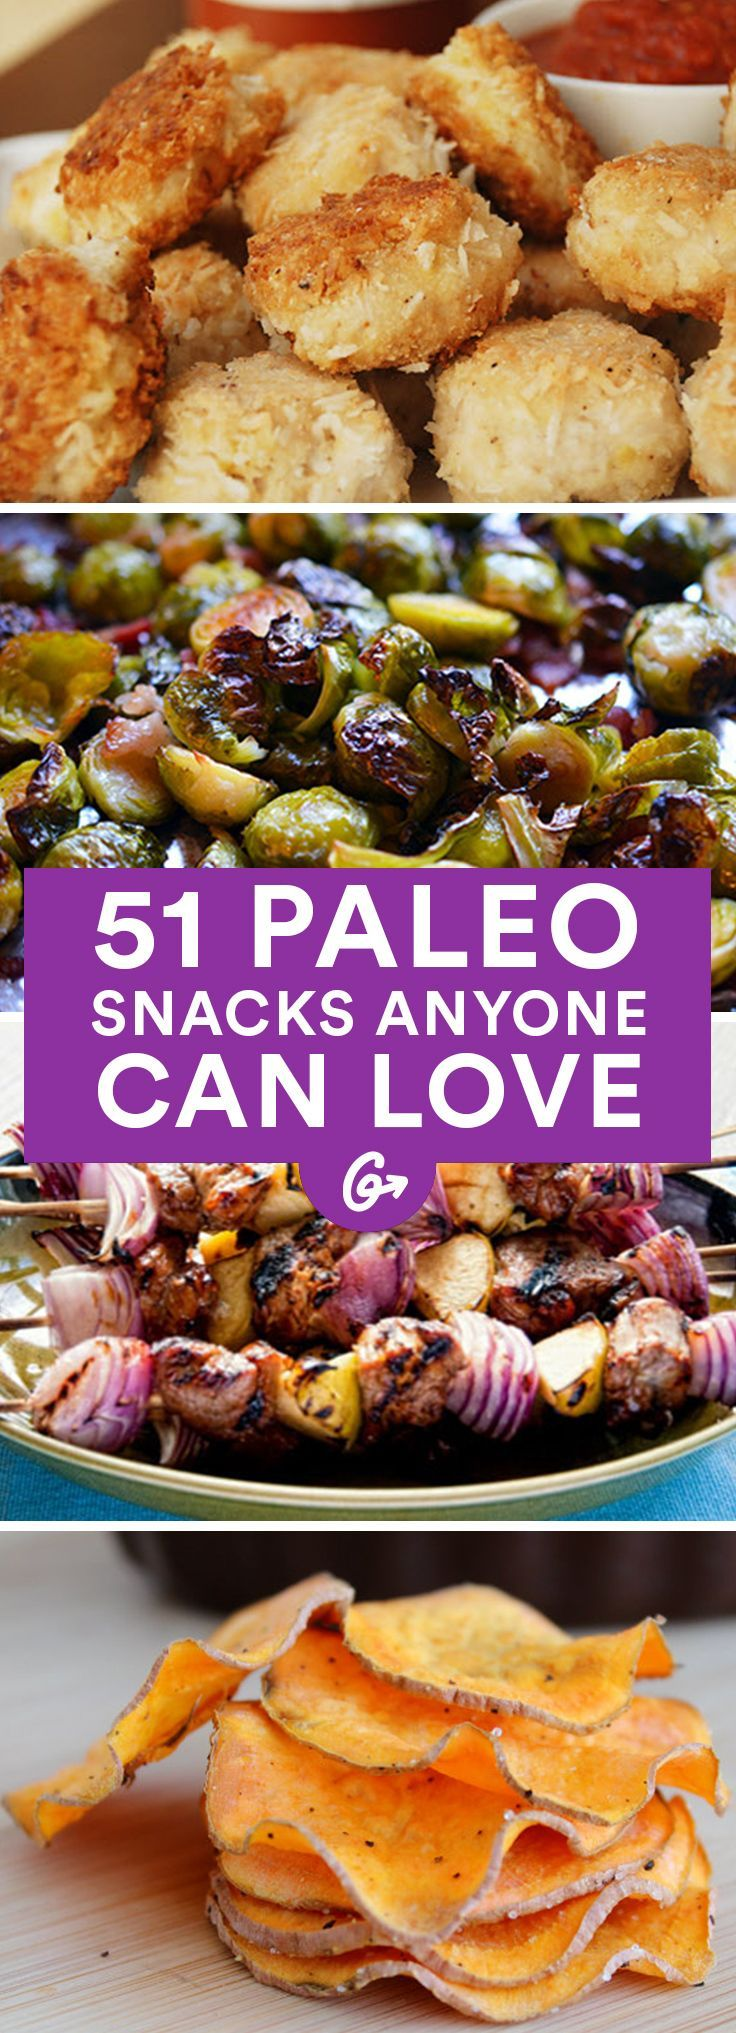 Paleo eaters may shun grains, processed vegetable oils, and refined sugars, but that doesnt stop them from enjoying plenty of delicious dishes #paleo #snacks http://greatist.com/health/paleo-recipes-list